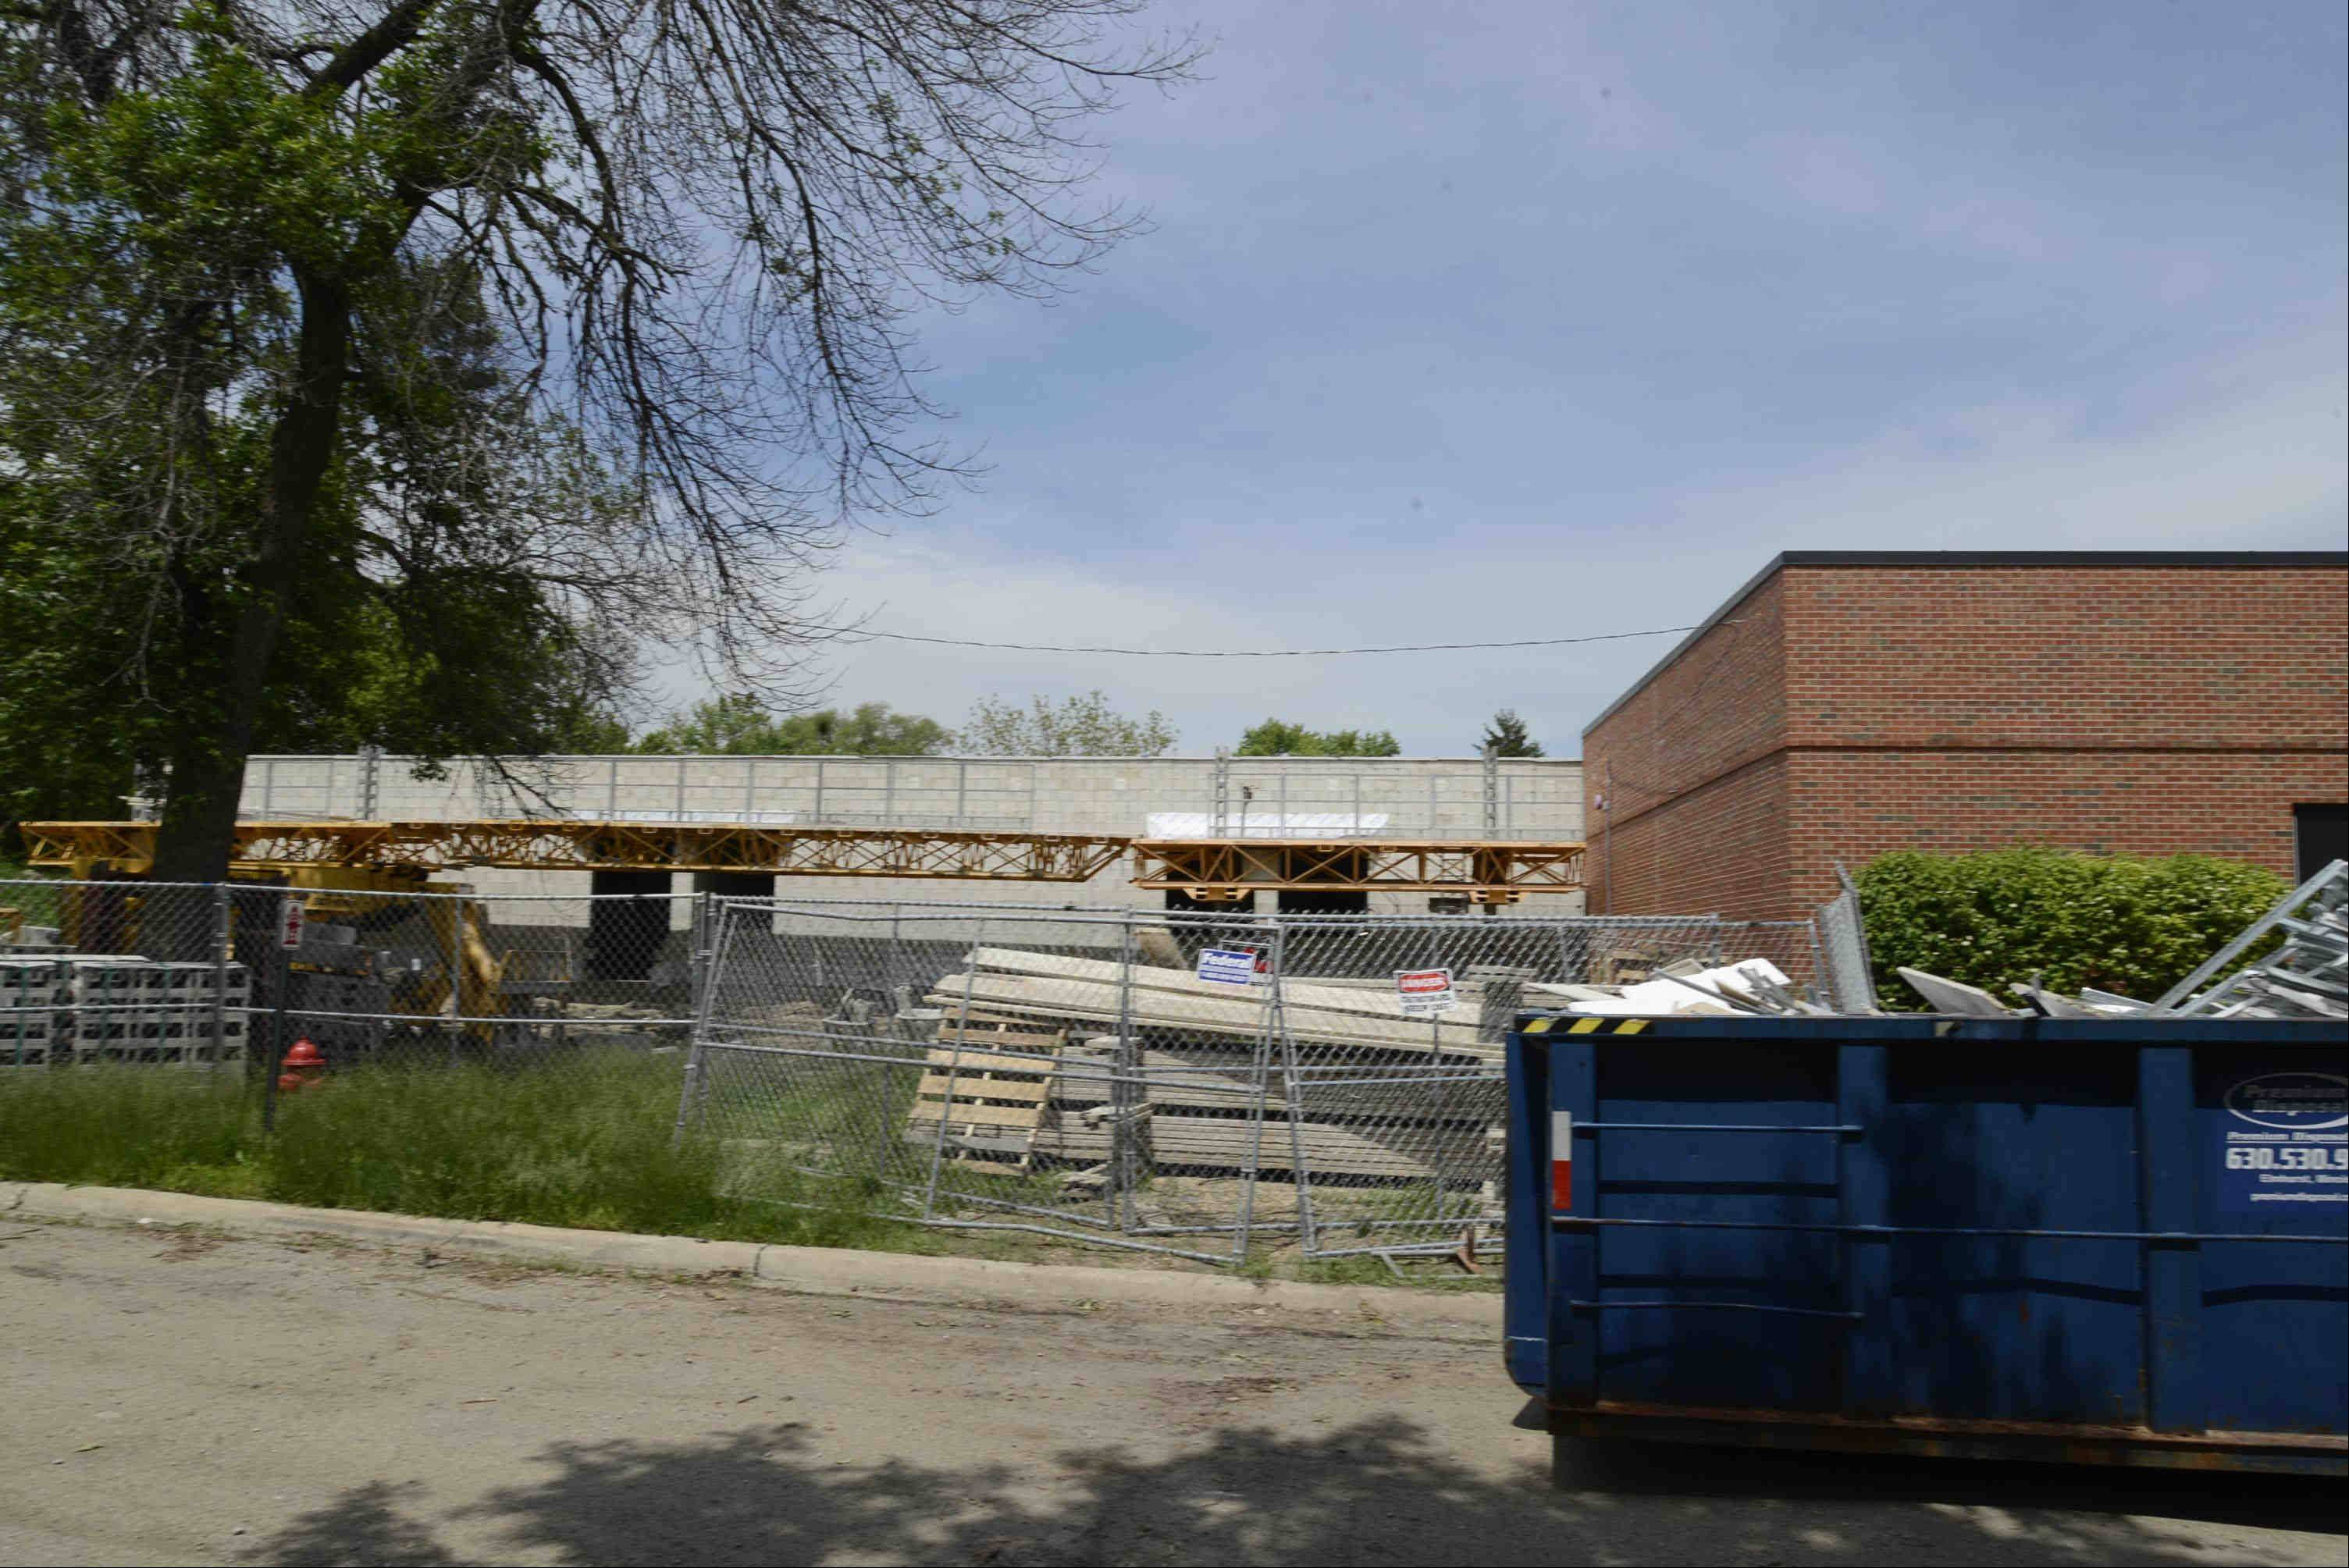 Ontarioville Elementary School in Hanover Park is getting five additional classrooms as part of a $3.5 million construction project this summer. But some say students could be moved to a school two miles away that is about half full.